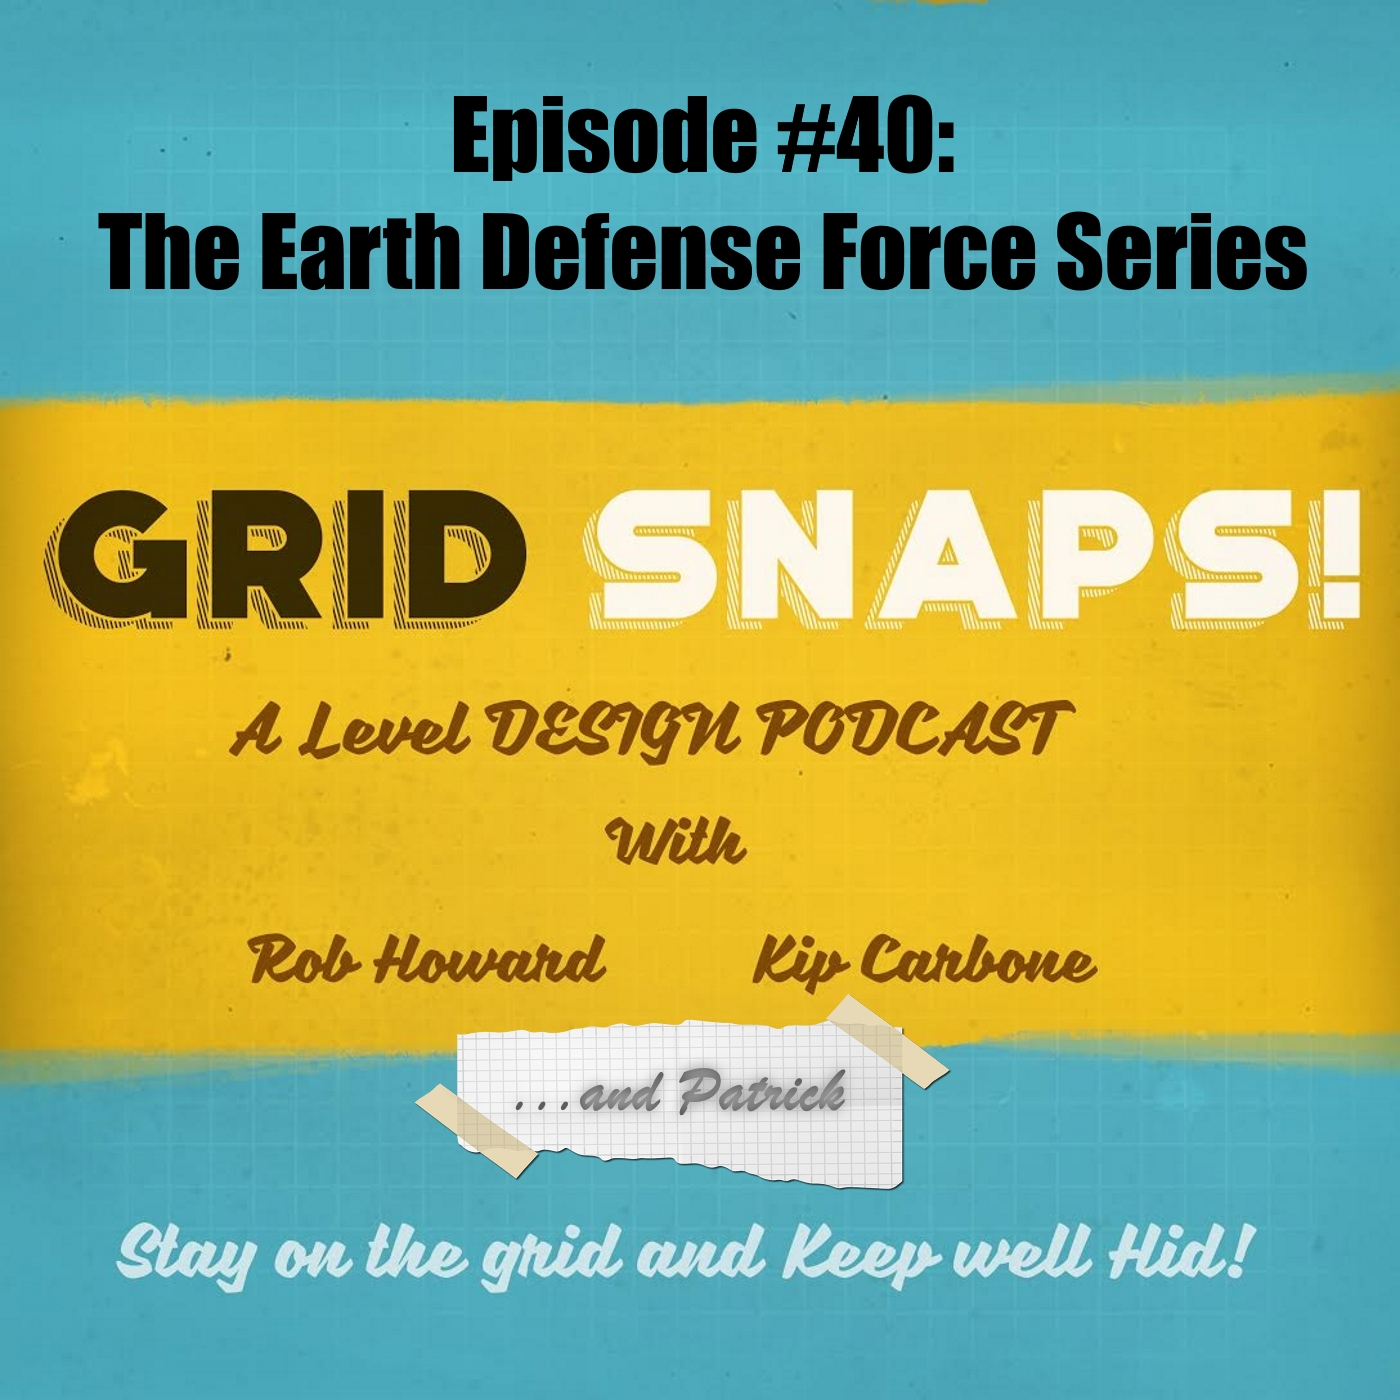 GSPC Episode #40: The Earth Defense Force Series